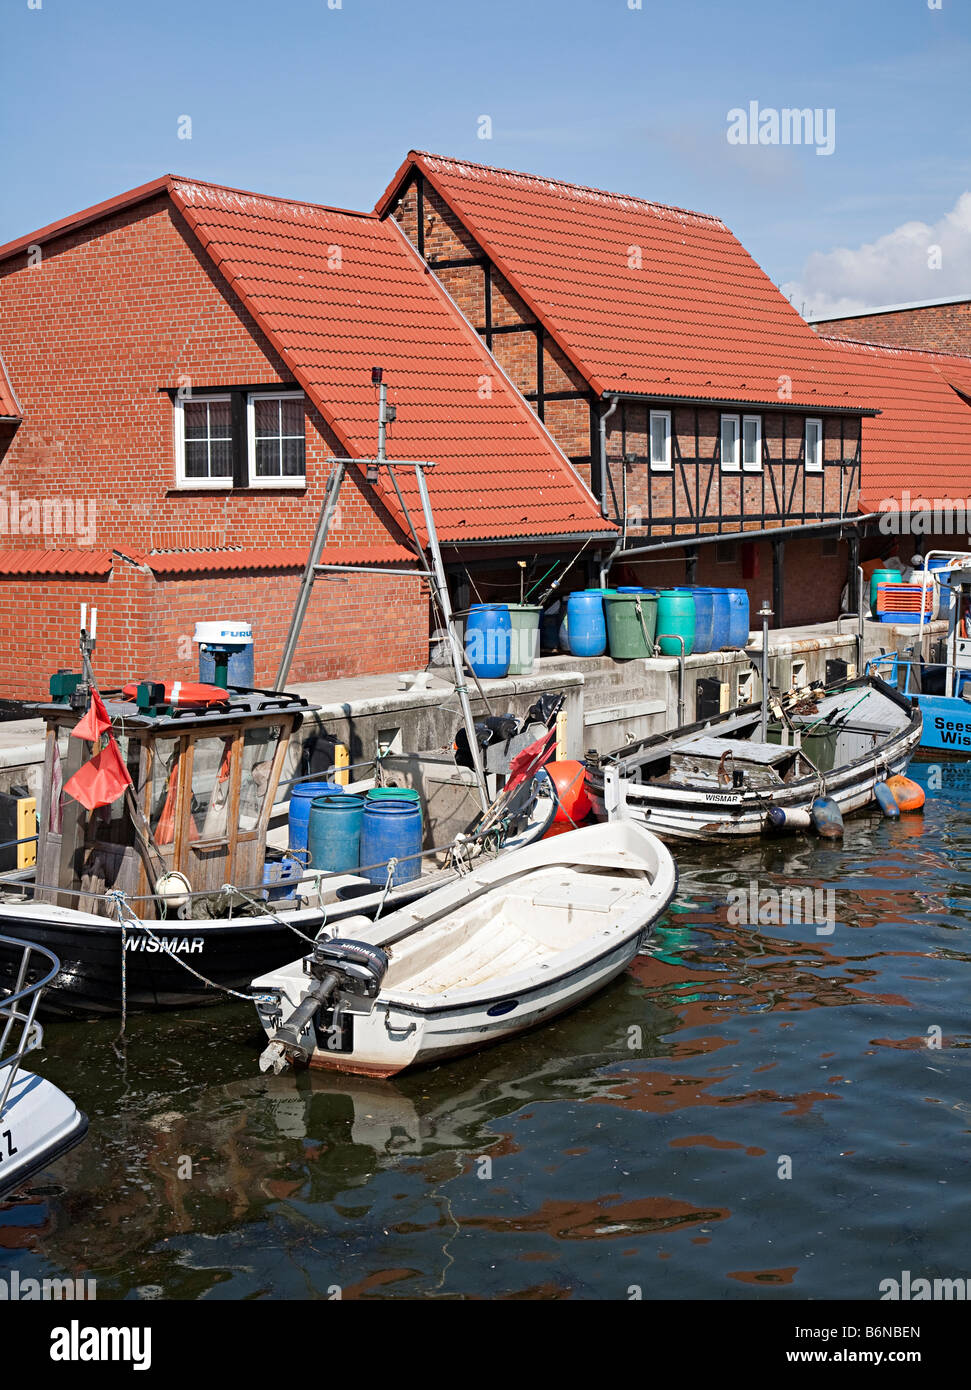 Harbour buildings and boats on the Baltic Sea Wismar Germany - Stock Image